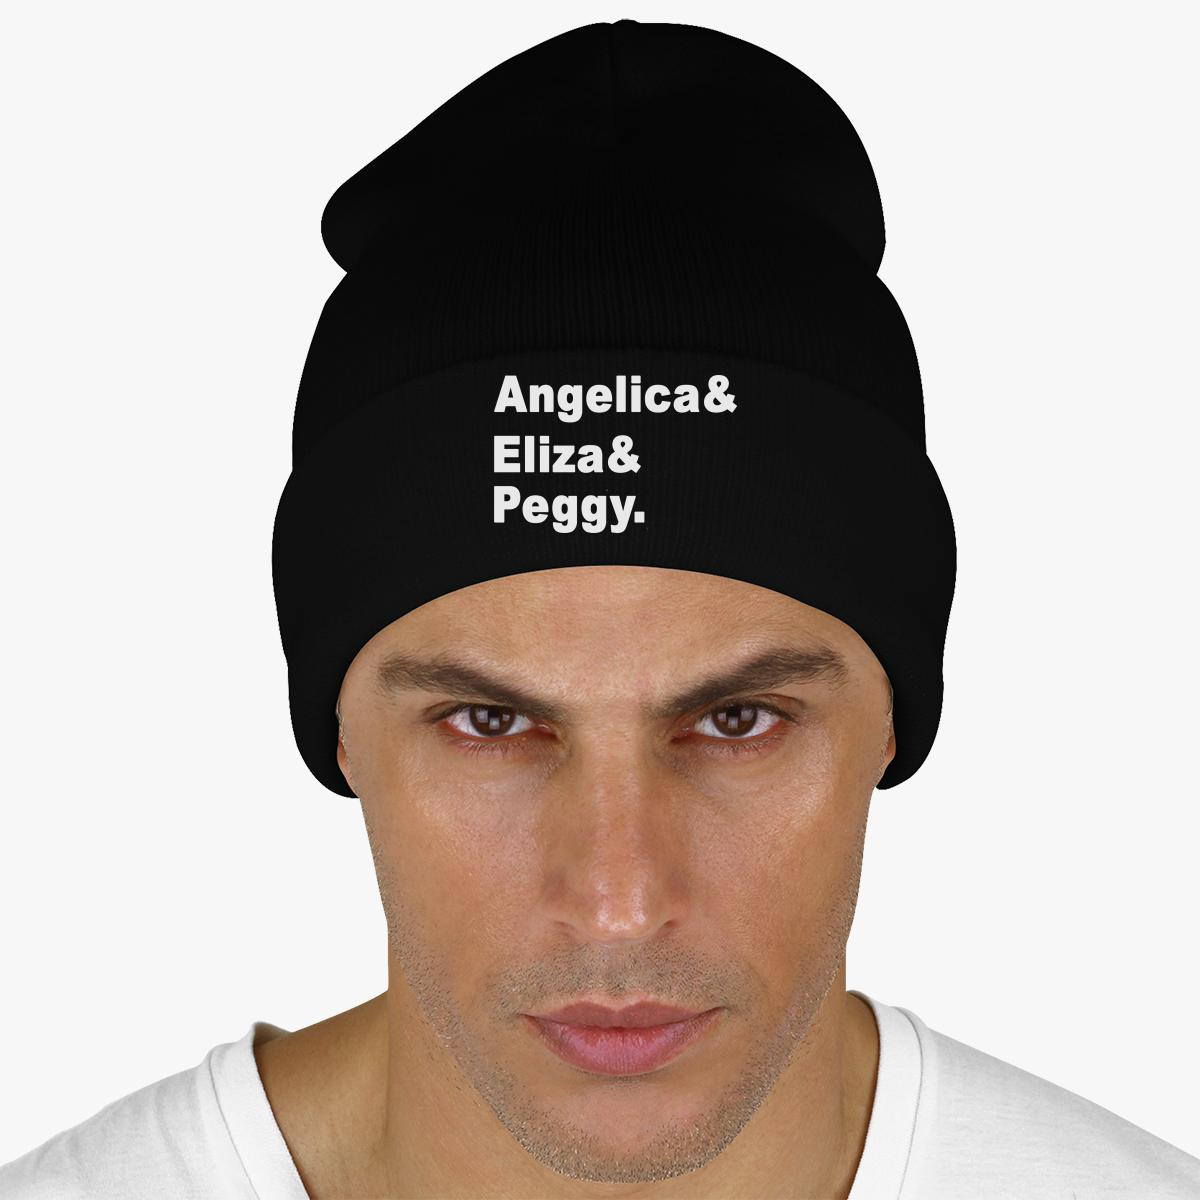 Angelica, Eliza, Peggy Knit Cap